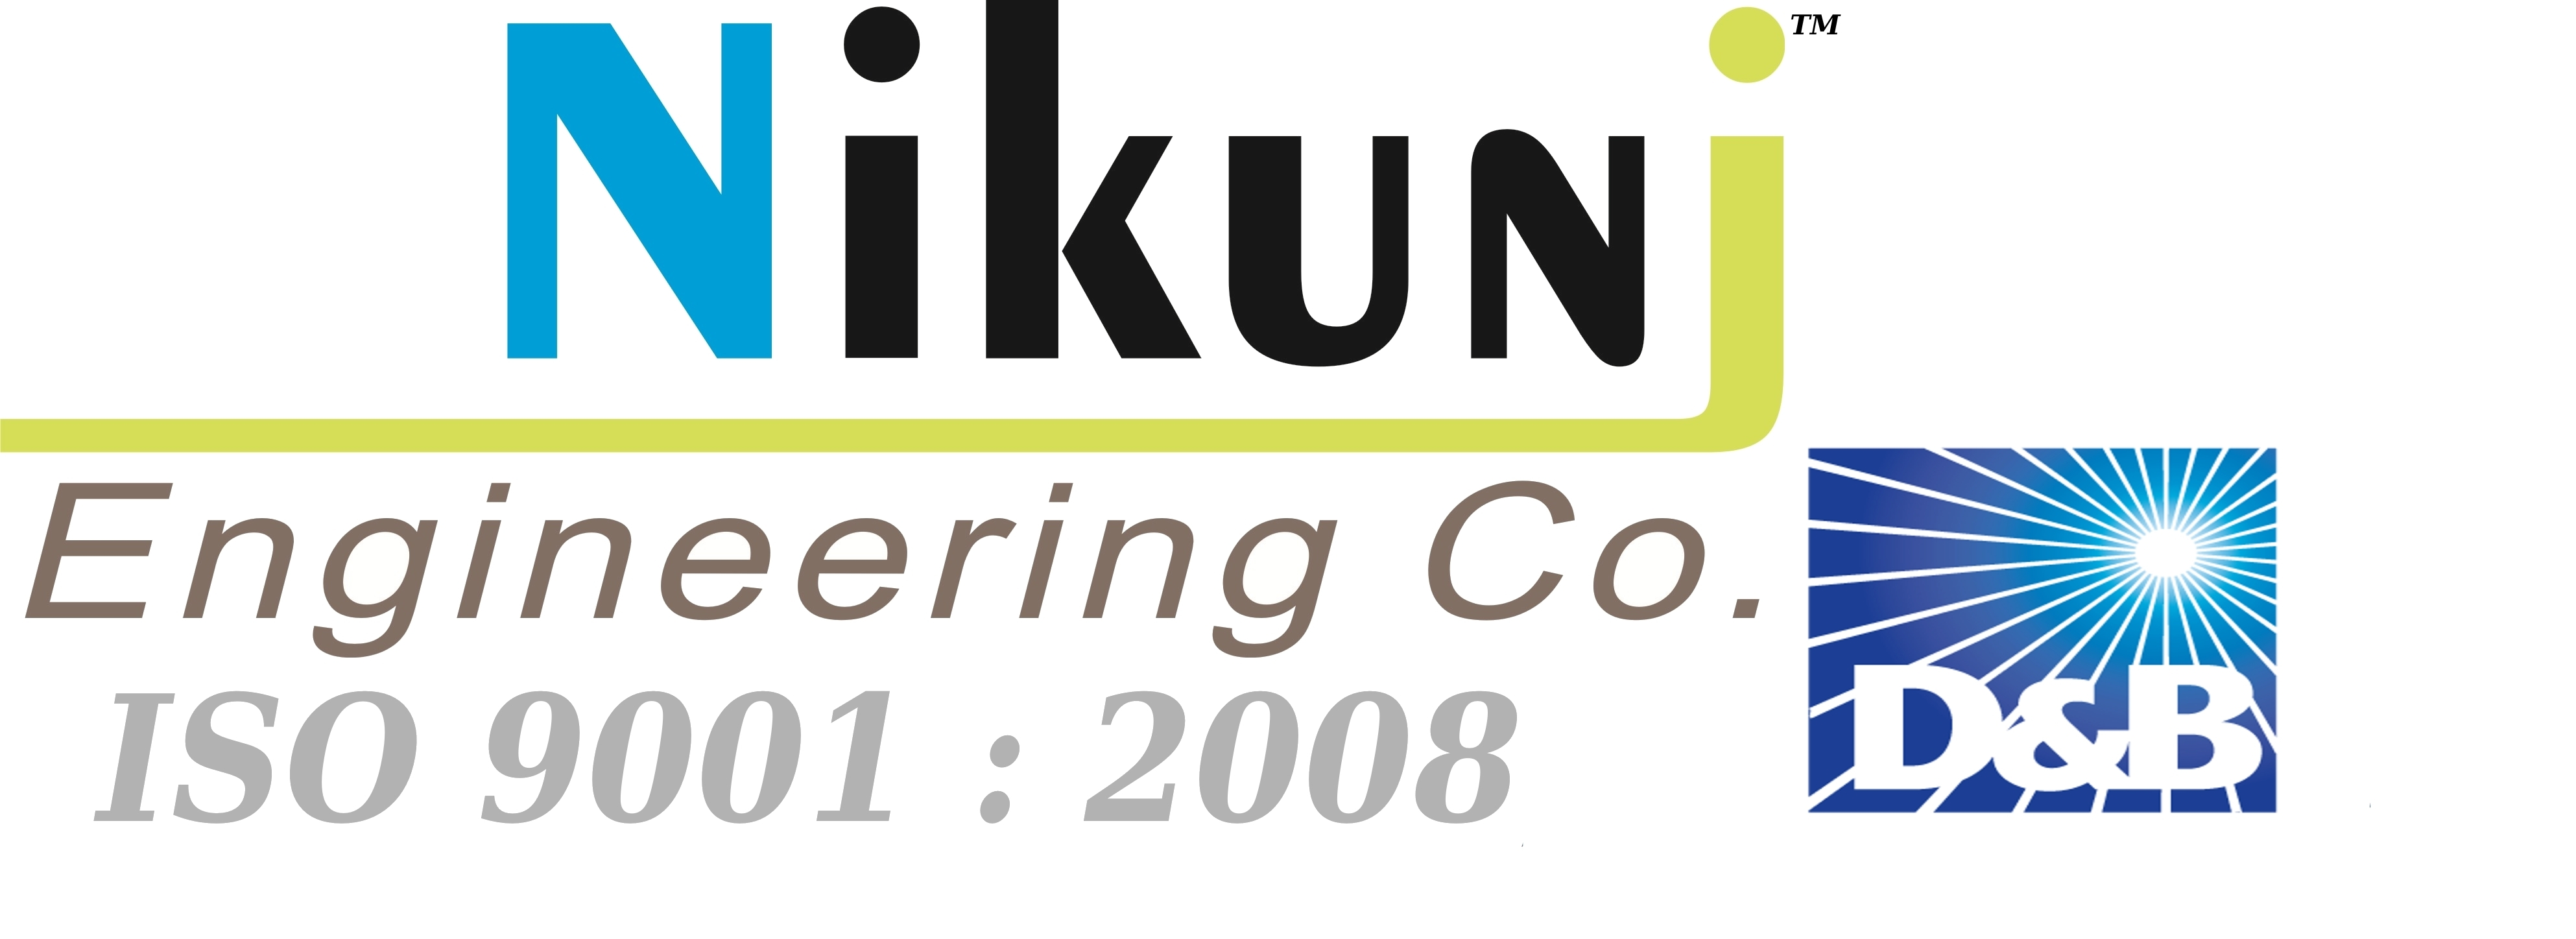 Nikunj Engineering Co | Agarbatti Making Machine Manufacturer - logo